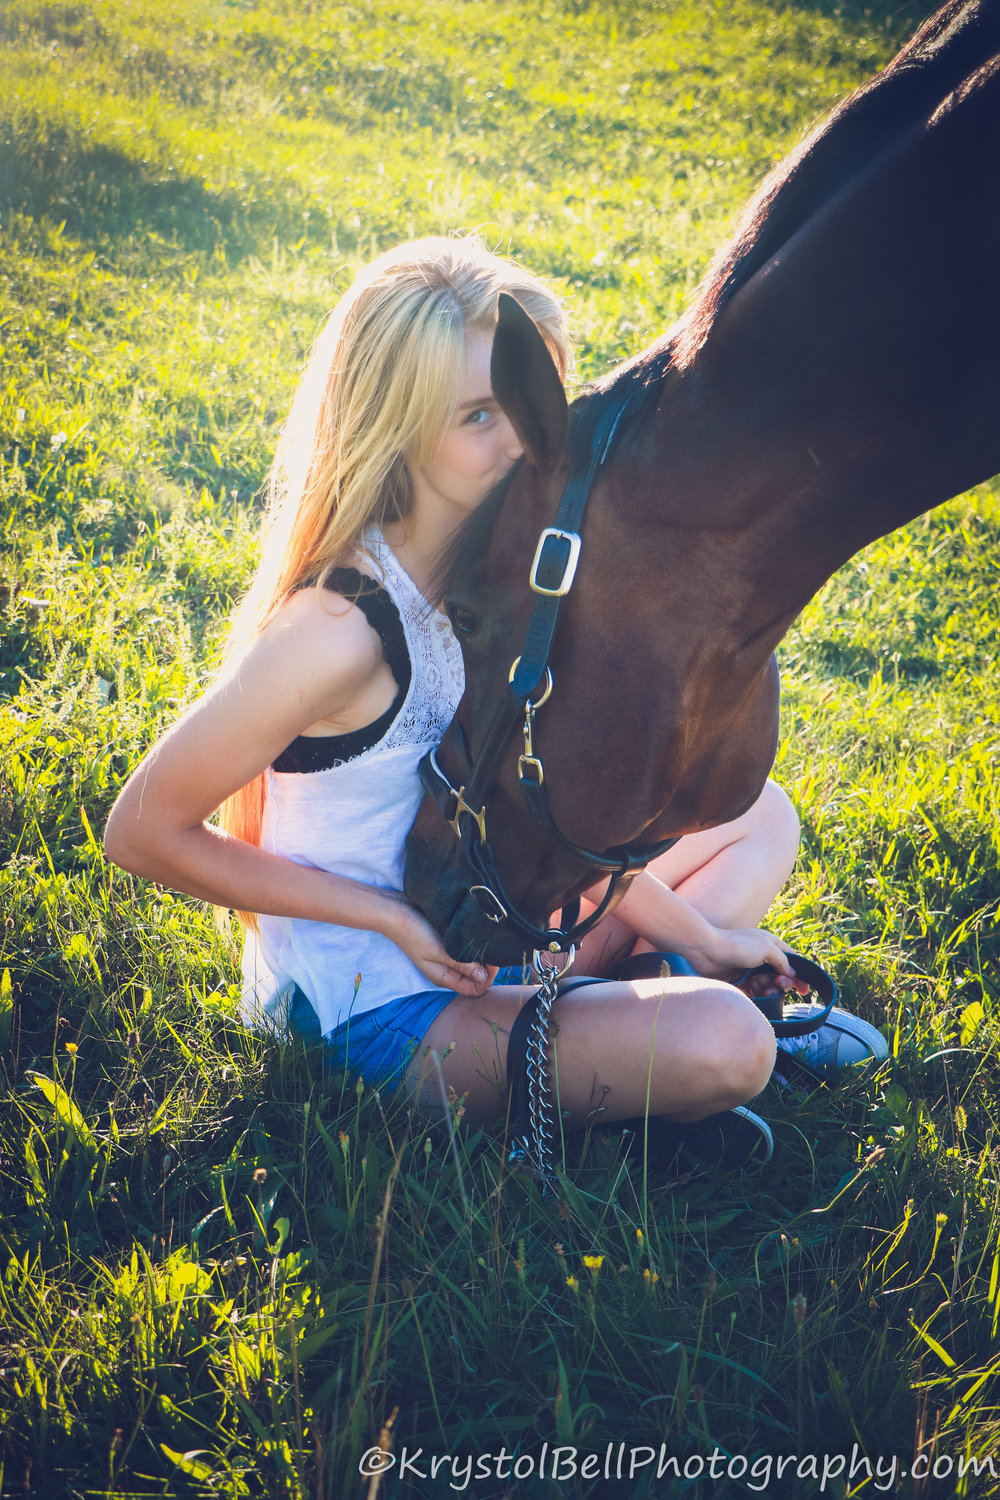 Esme and her horse were so much fun.  The horse is a well trained, show jumping horse and was not as happy to snuggle and get cute, cuddly photos as we would have liked, but it was still so much fun and I love how Esme's love shines through in this image!